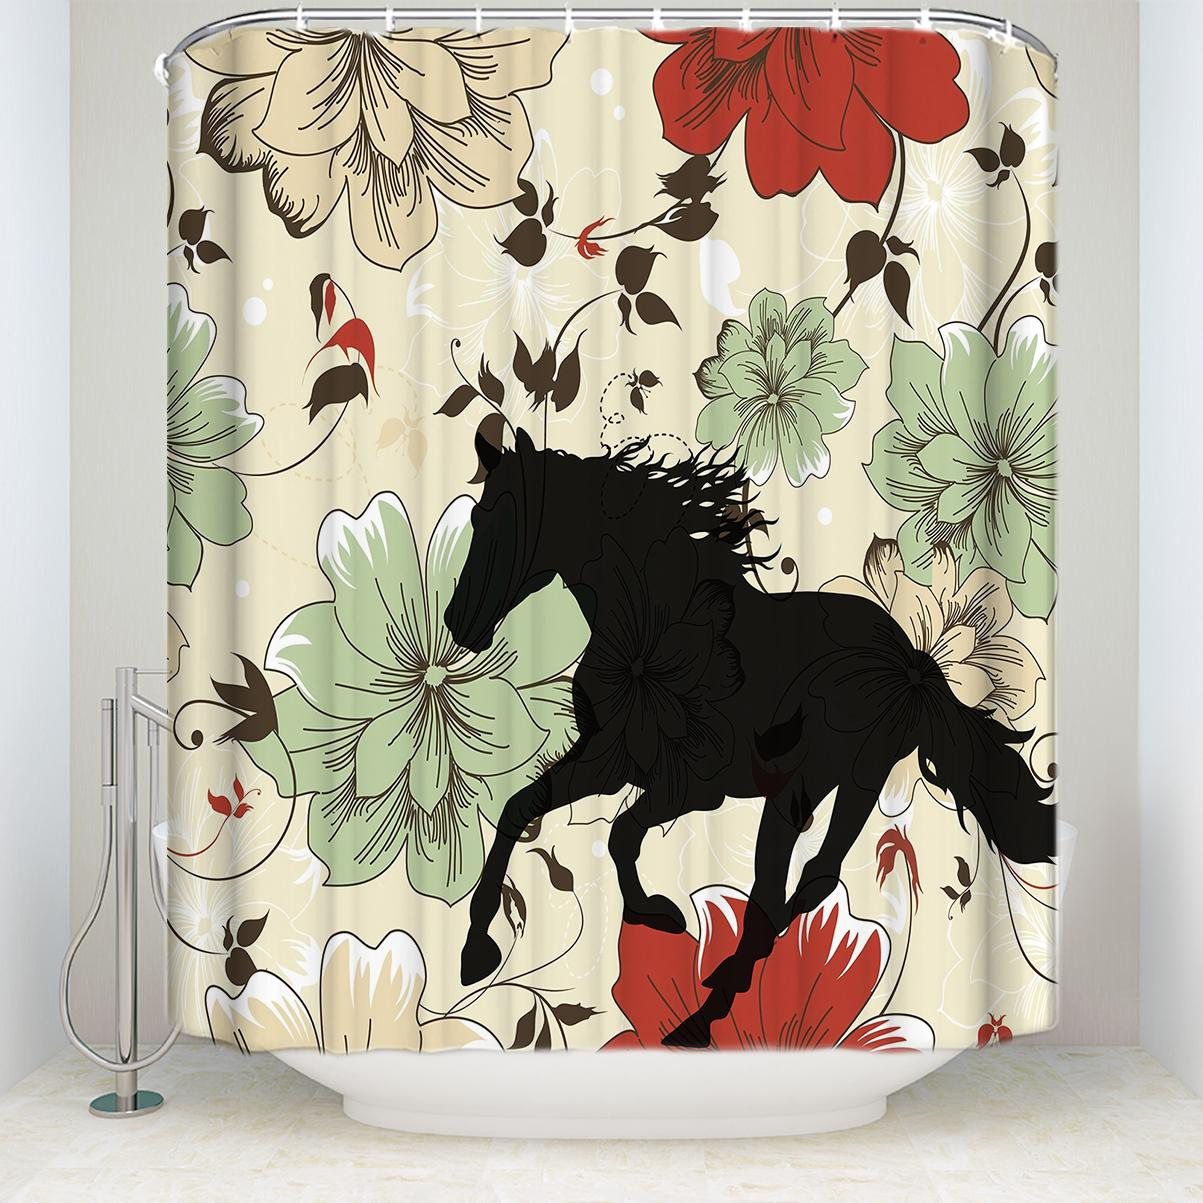 2019 Waterproof Colorful Flowers With Horse Silhouette Shower Curtain With Hooks Polyester Fabric Bathroom Curtains For Home Decor From Waxer 30 27